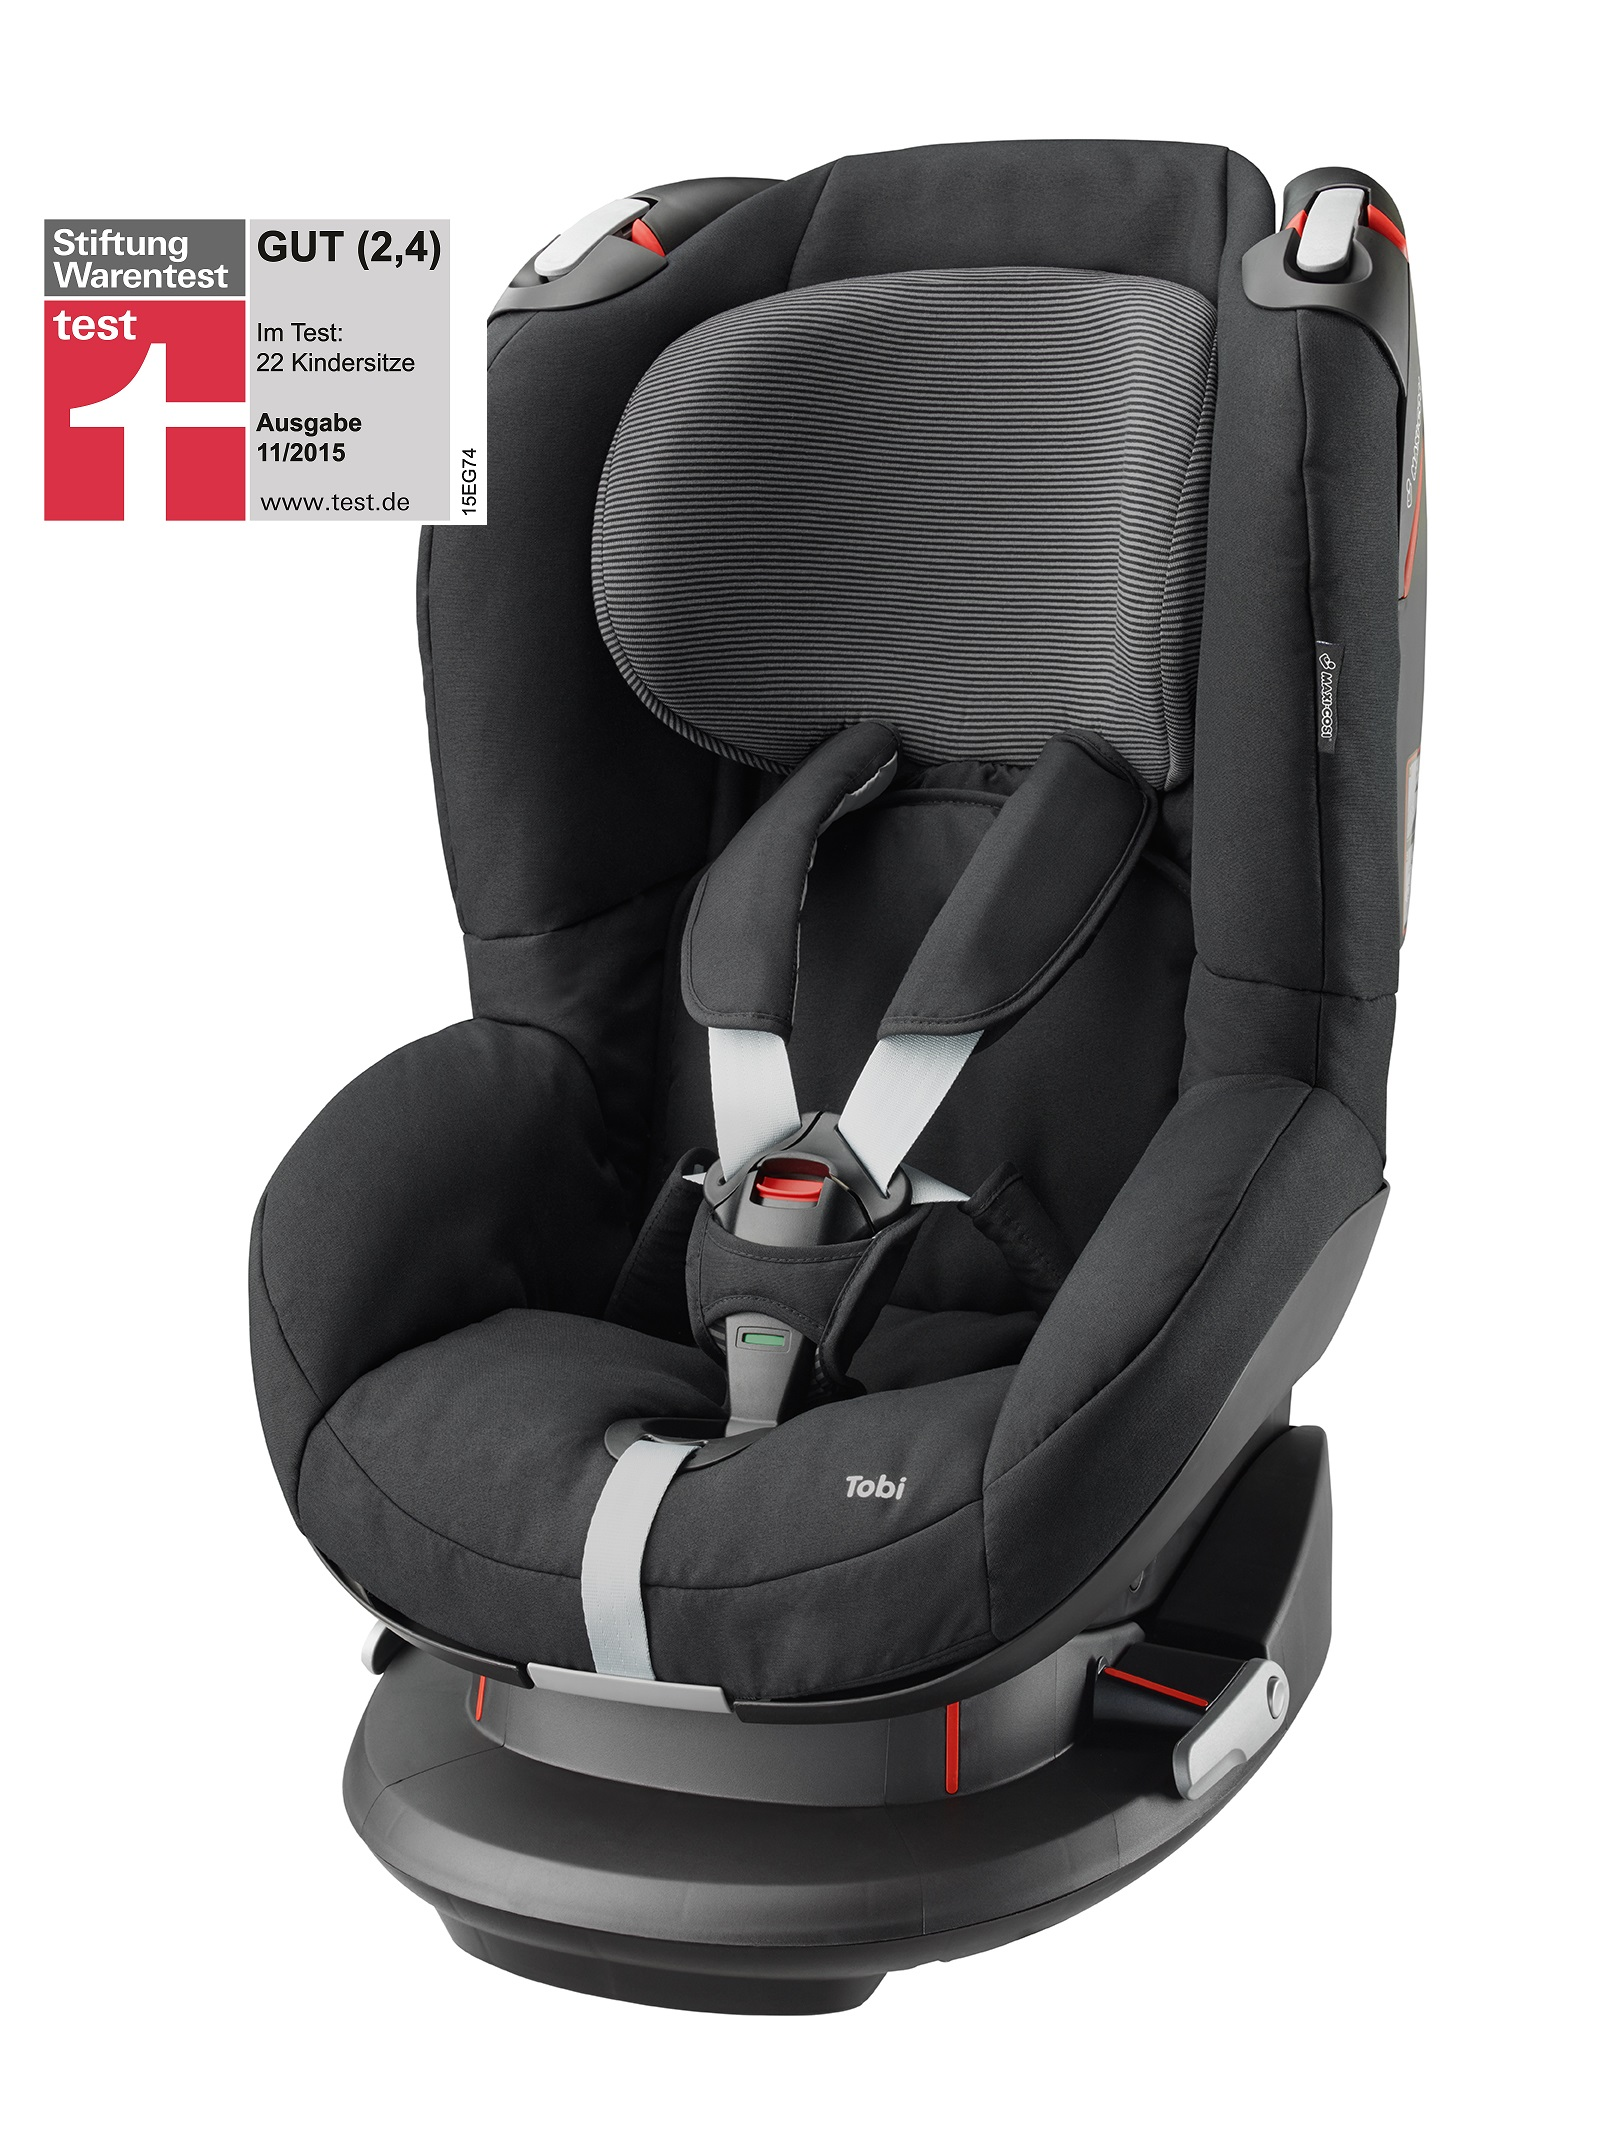 maxi cosi child car seat tobi 2017 black raven buy at kidsroom car seats. Black Bedroom Furniture Sets. Home Design Ideas